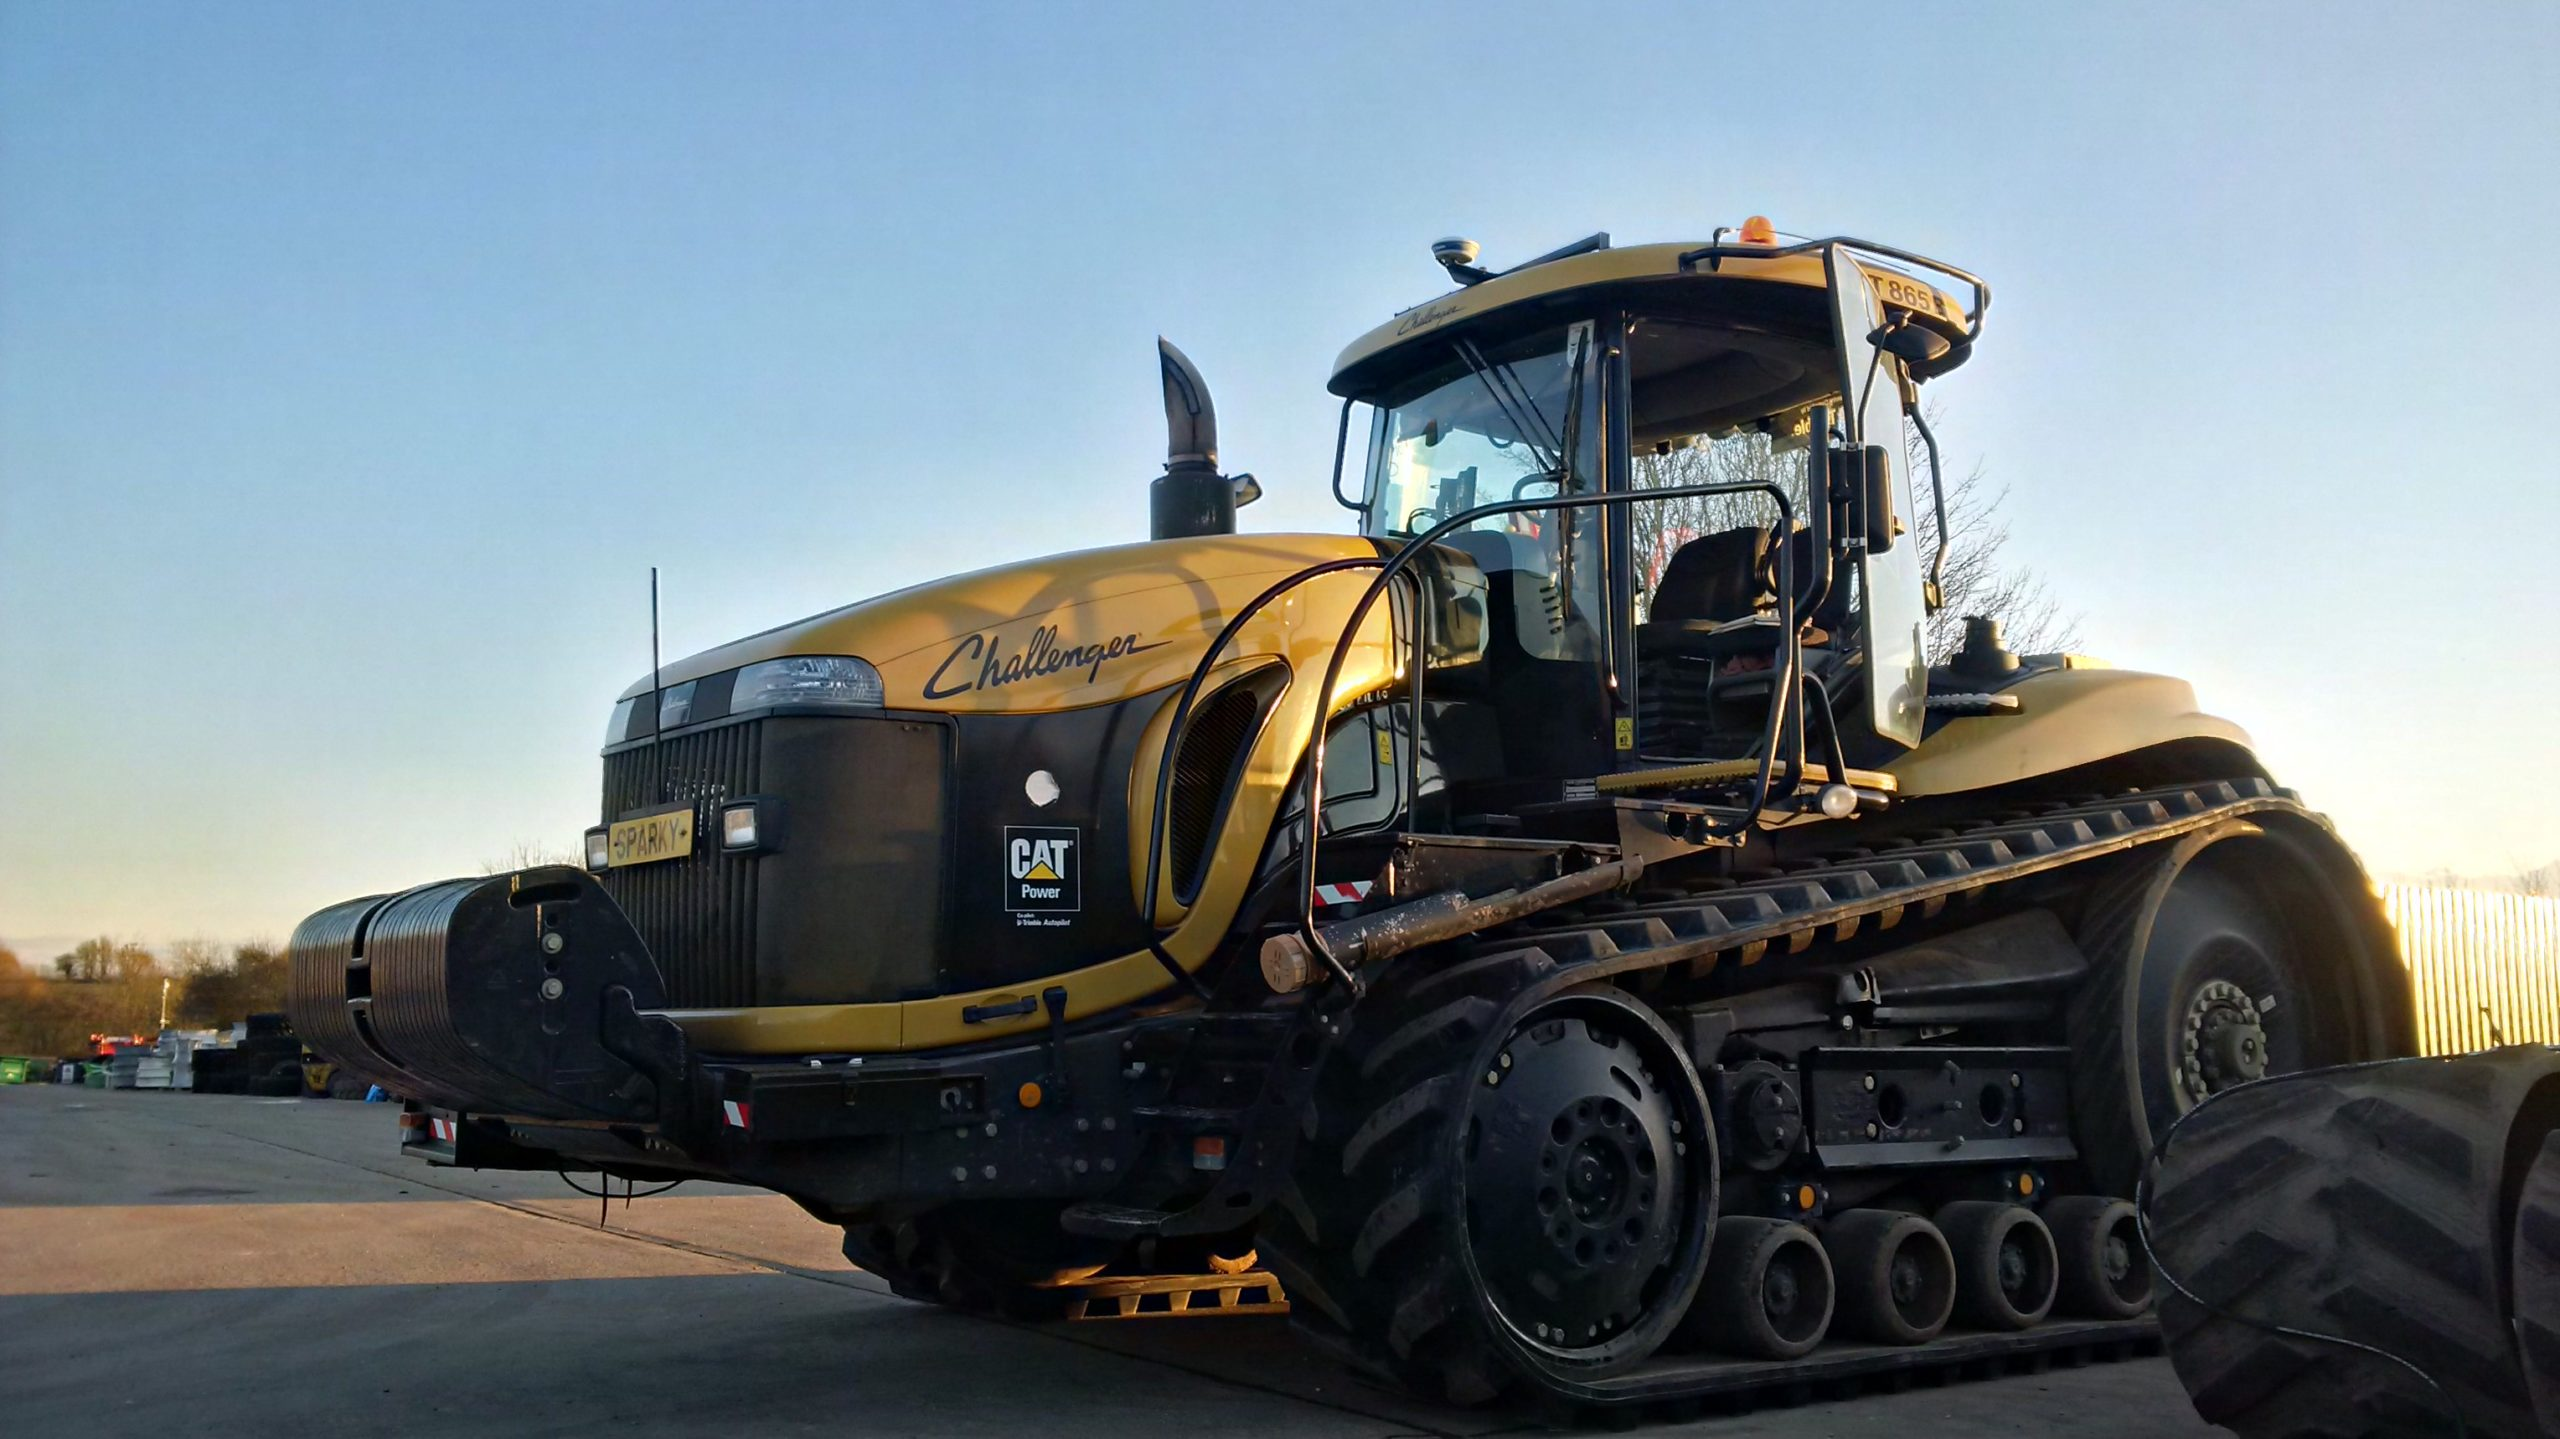 Bridgestone Series 6 tracks fitted to CAT Challenger MT 865 at OUTLAND works (3)